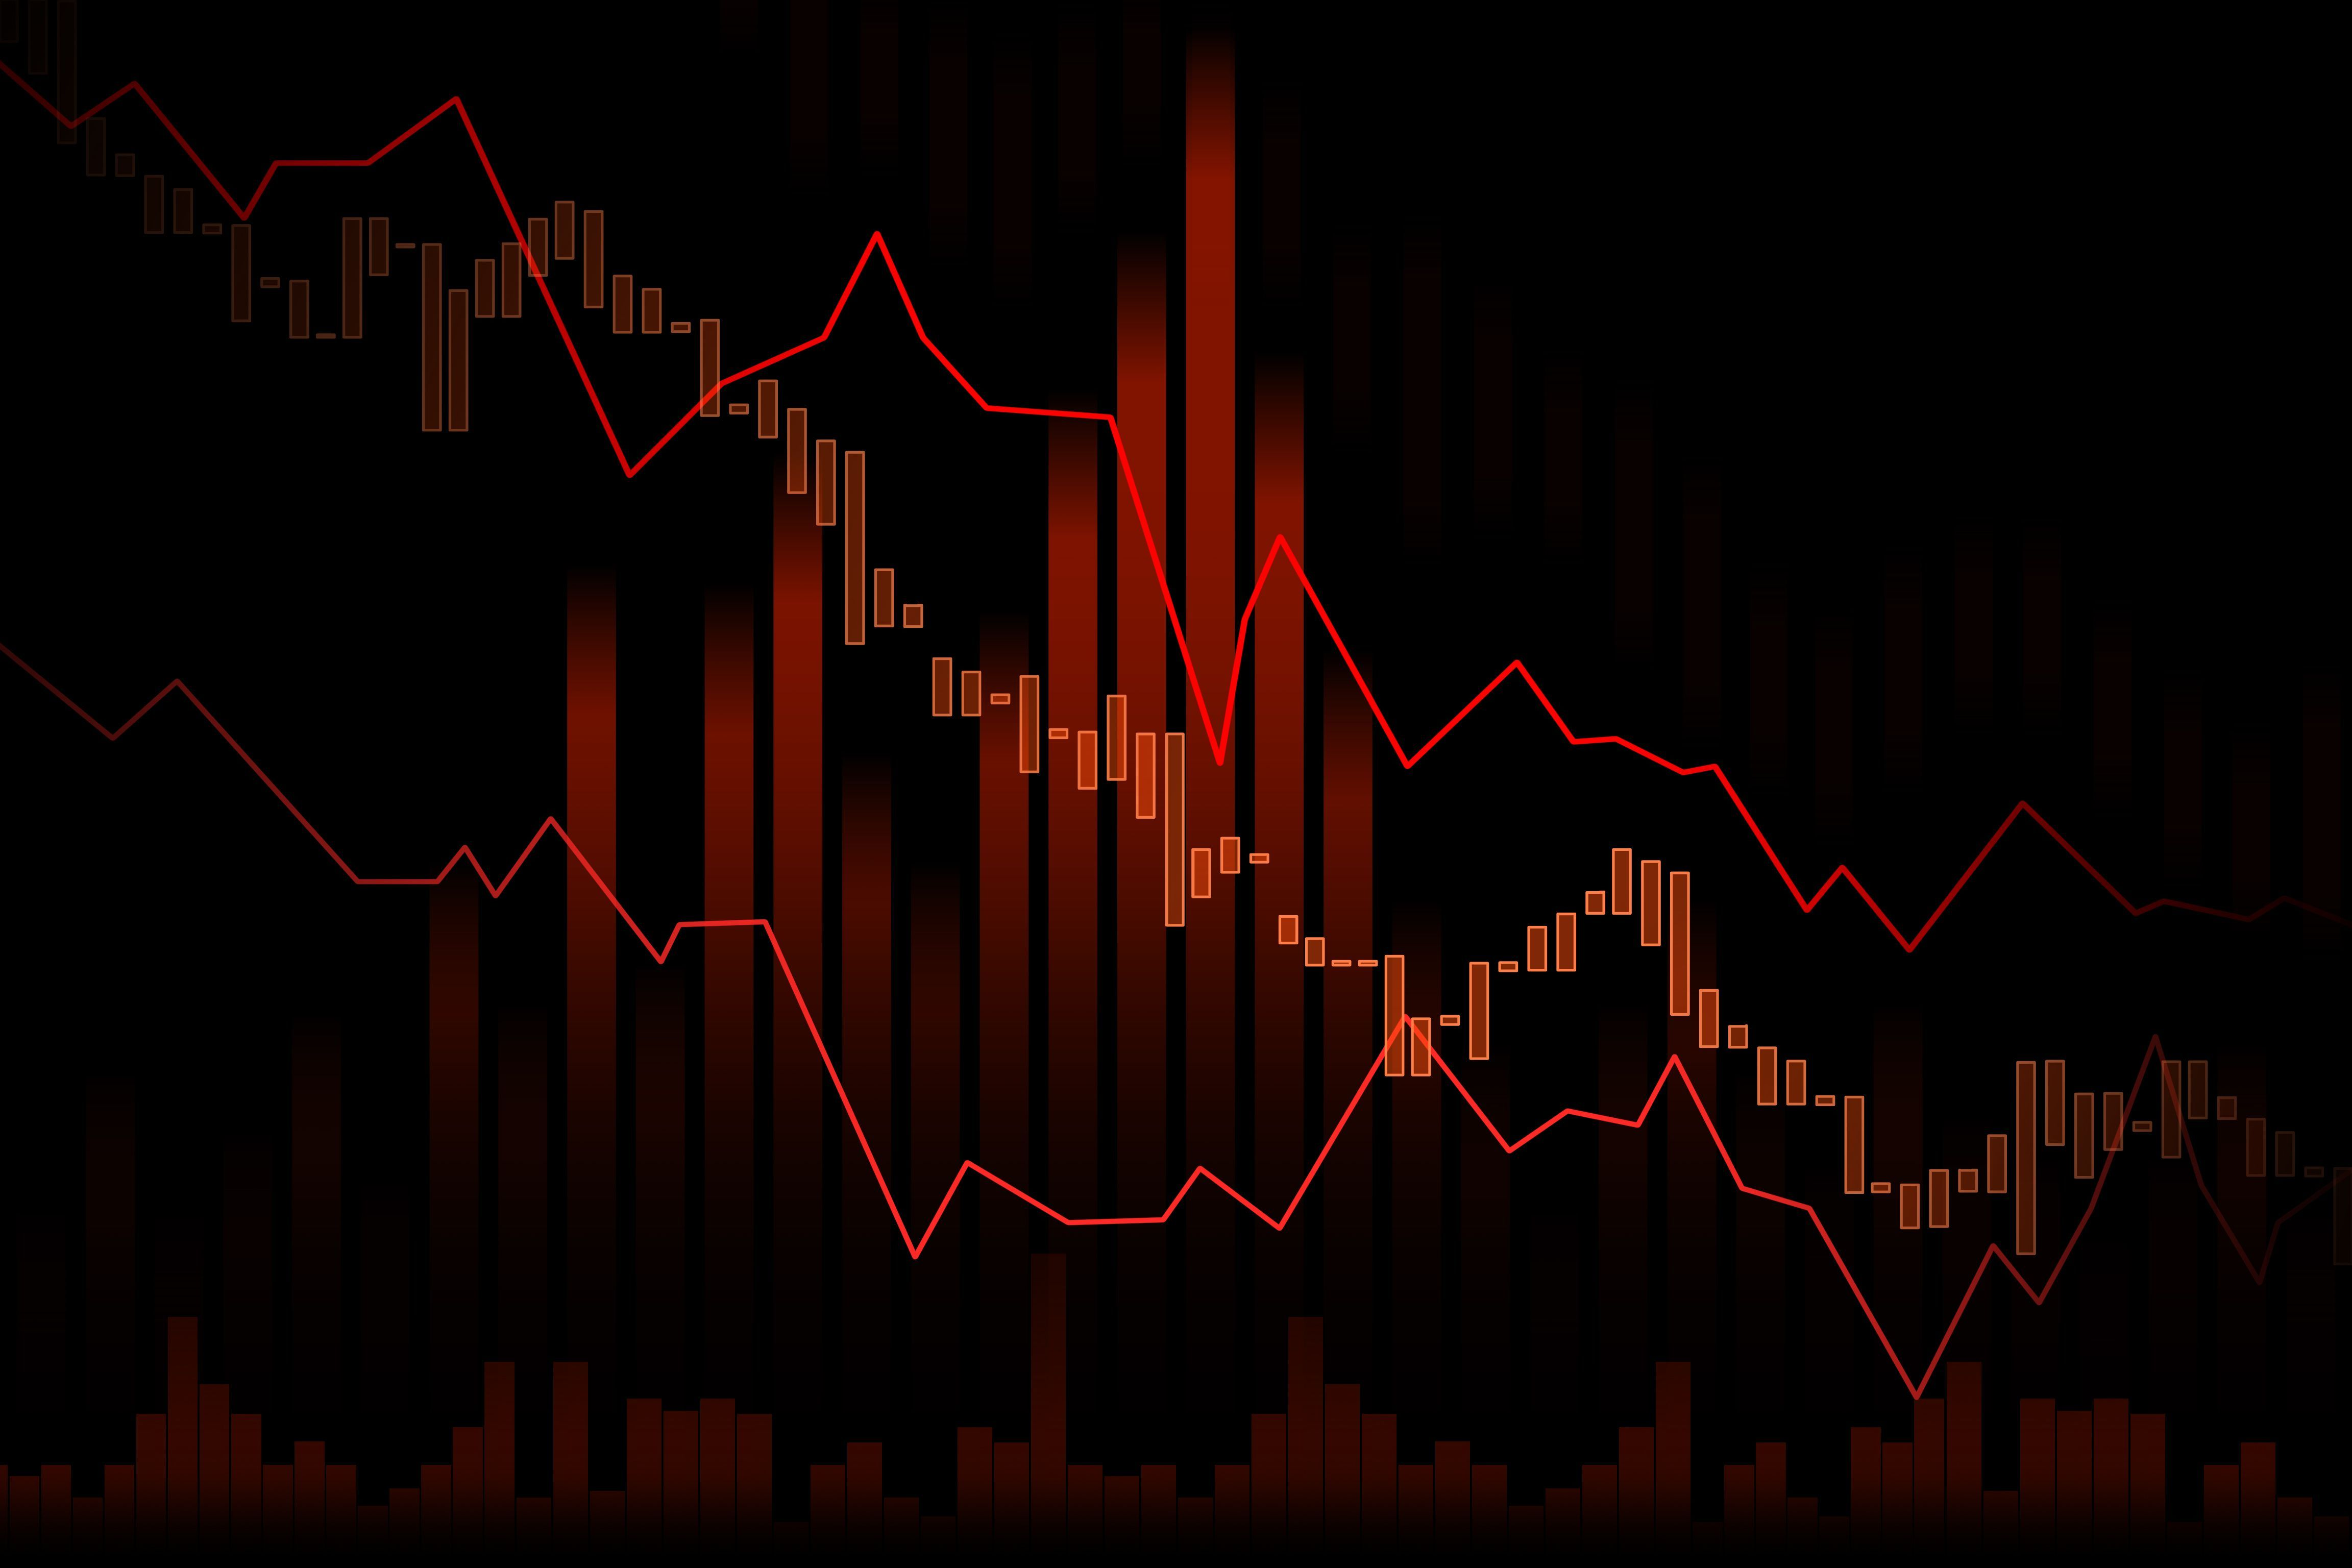 Downtrend Stock Market Or Forex Trading Graph In Graphic Concept In 2020 Forex Trading Stock Market Stock Market Graph